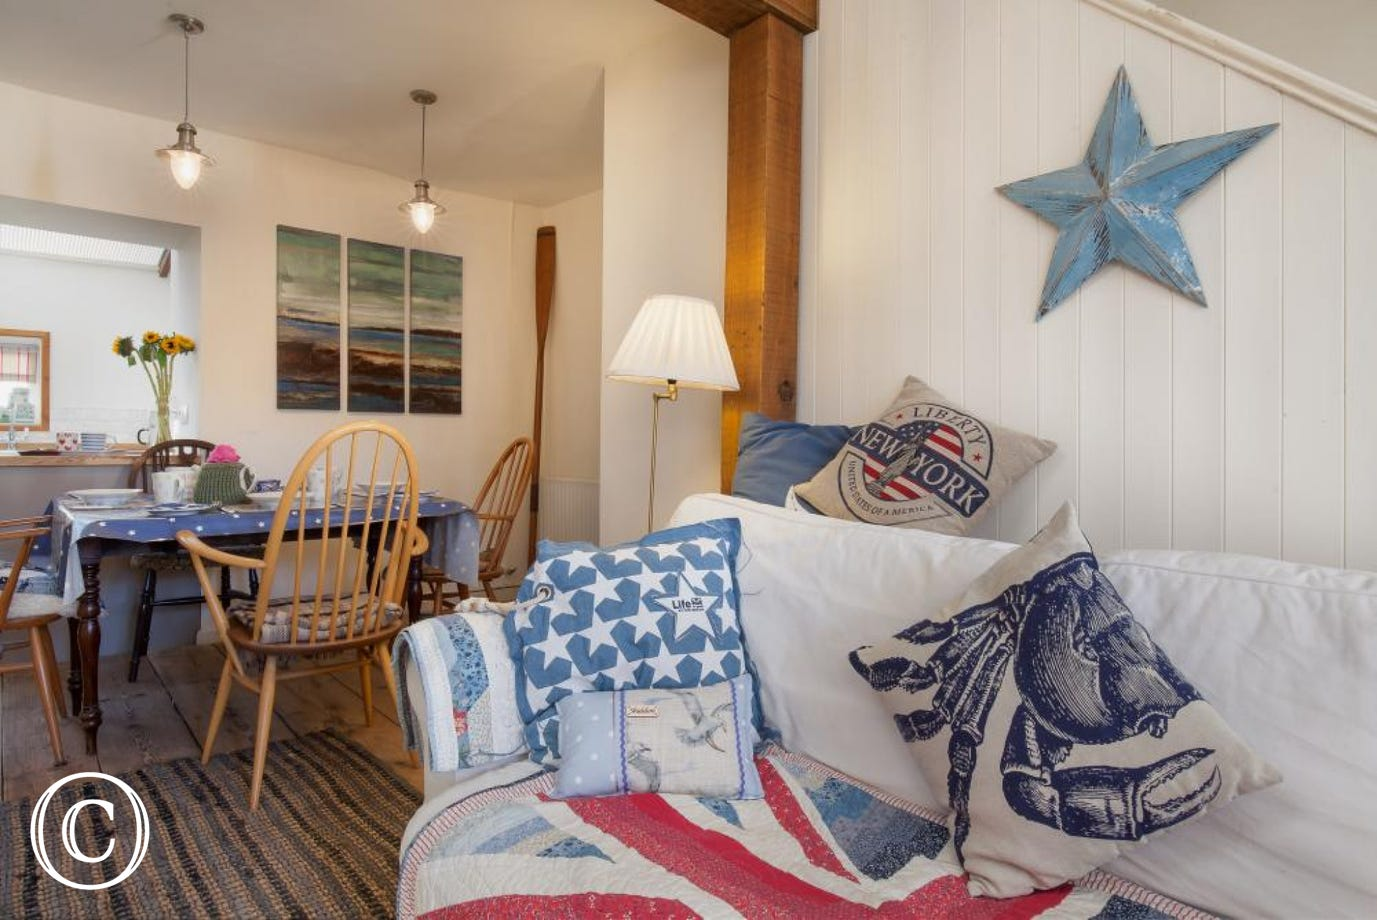 Star Cottage, Shaldon - Living area with sofa and dining table in the background